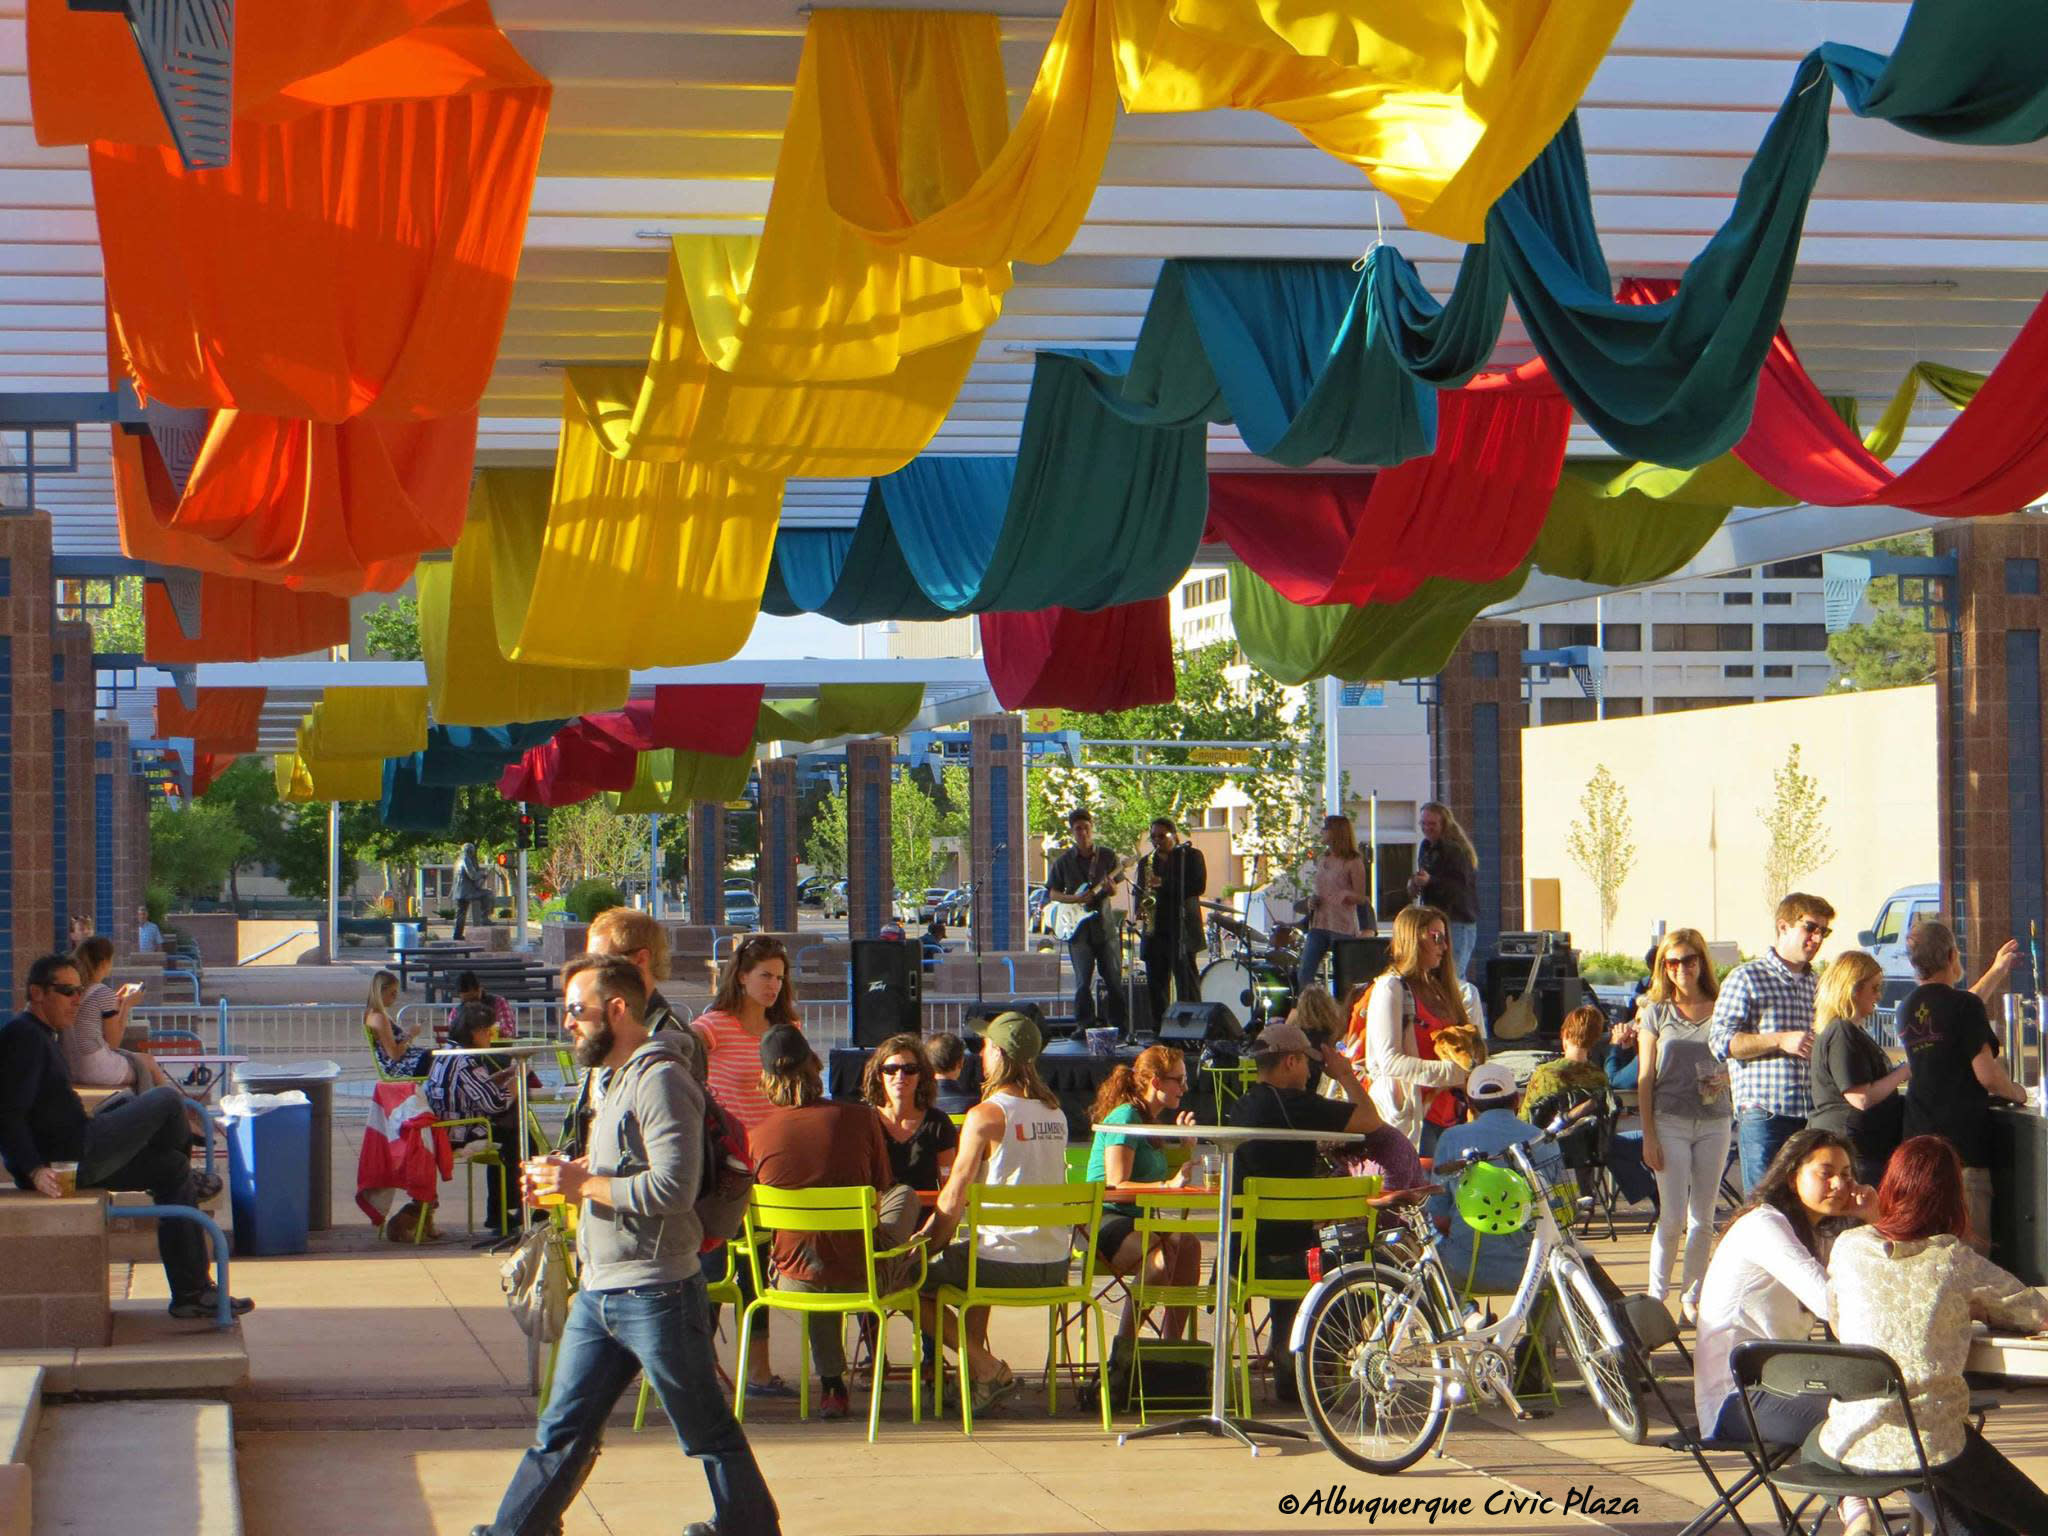 Civic Plaza events in Downtown Albuquerque